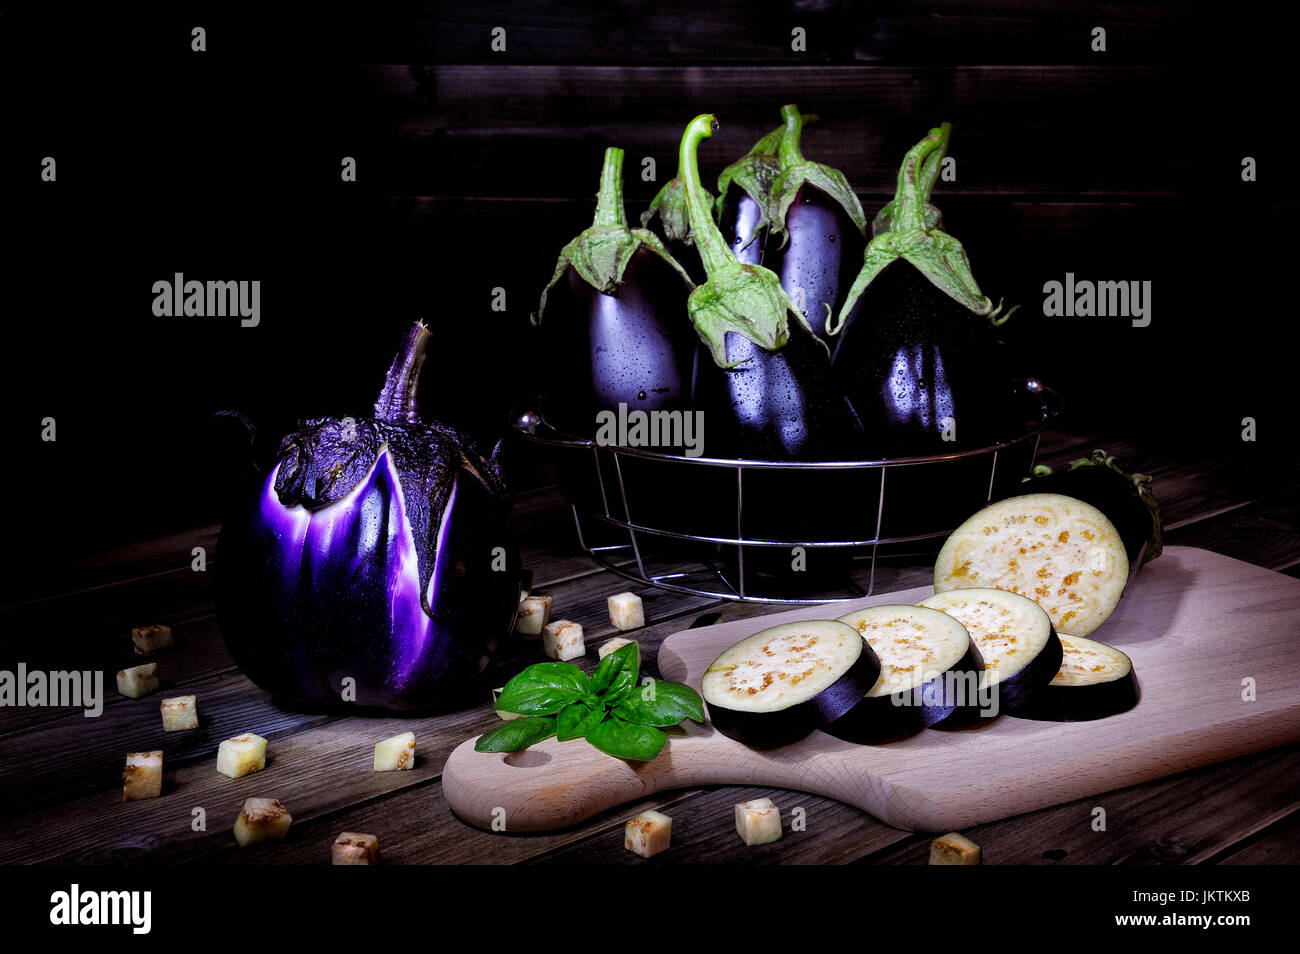 Close up of fresh purple whole eggplant and sliced over an aged wood table. Photographed with light painting technique. - Stock Image